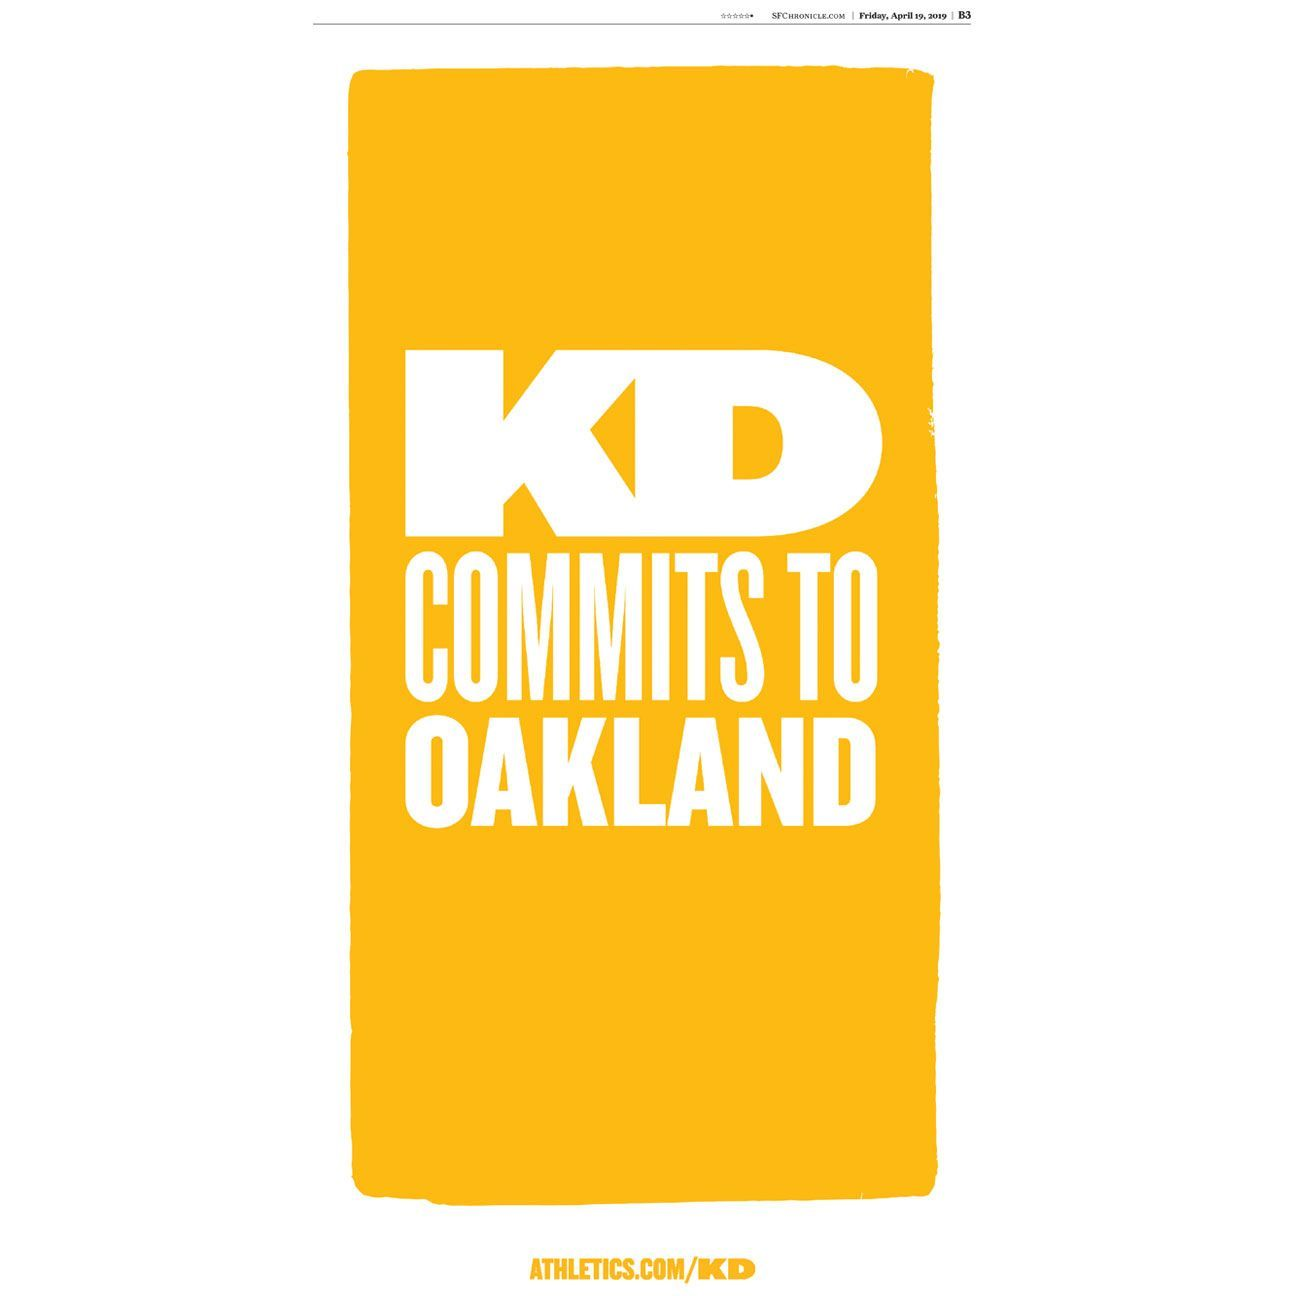 """The Athletics took out a full-page advertisement in the San Francisco Chronicle that reads """"KD commits to Oakland"""" in an apparent dig at Kevin Durant, who is set to hit free agency this summer."""